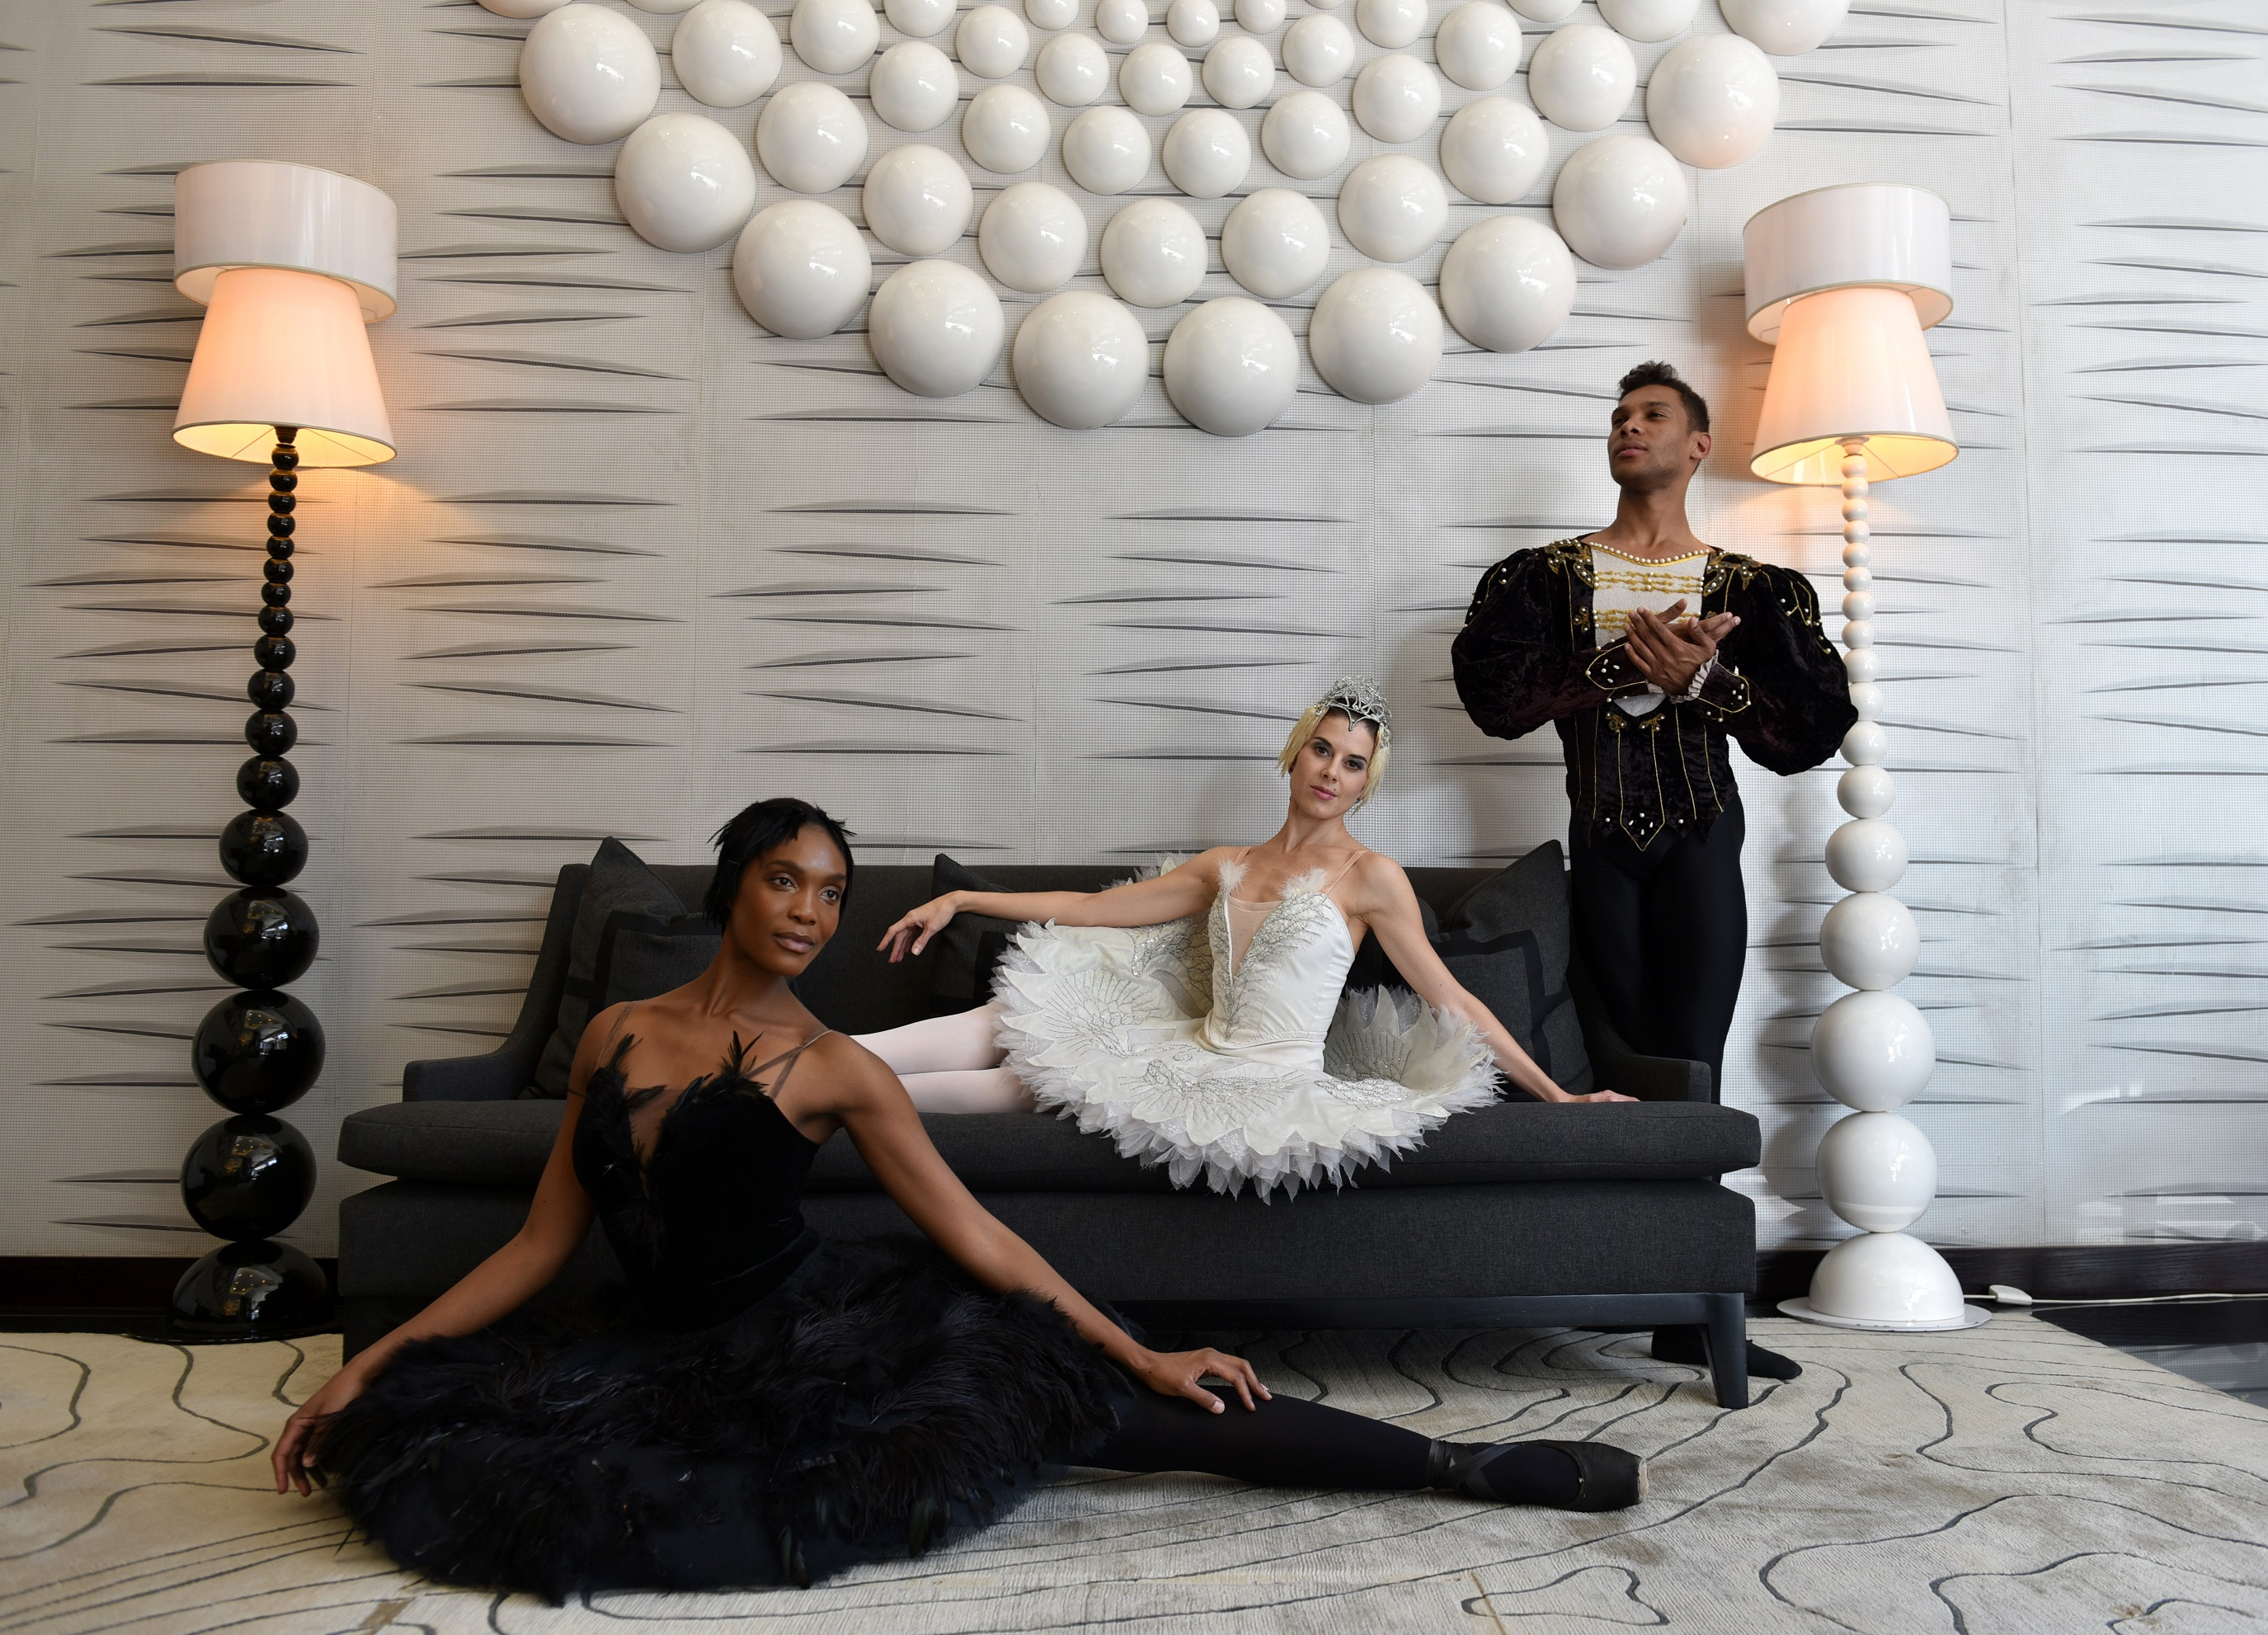 Burnise Silvius, Kitty Phetla and Jonathan Rodrigues pose for a picture at the 5-star DaVinci Hotel in Sandton, 4 March 2015. Joburg Ballet's production of Swan Lake runs from April 17 to May 3 on the Mandela stage at the Joburg Theatre. Tickets are on sale now, only at www.joburgtheatre.com. Picture: Tracy Lee Stark